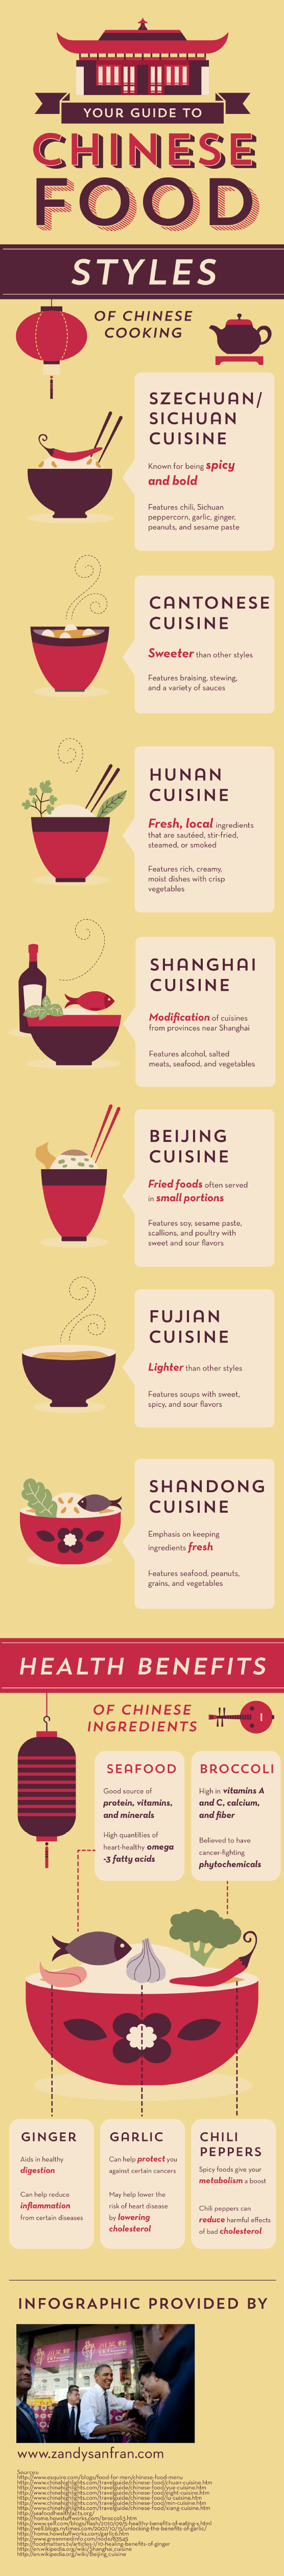 Types of Chinese Food Styles